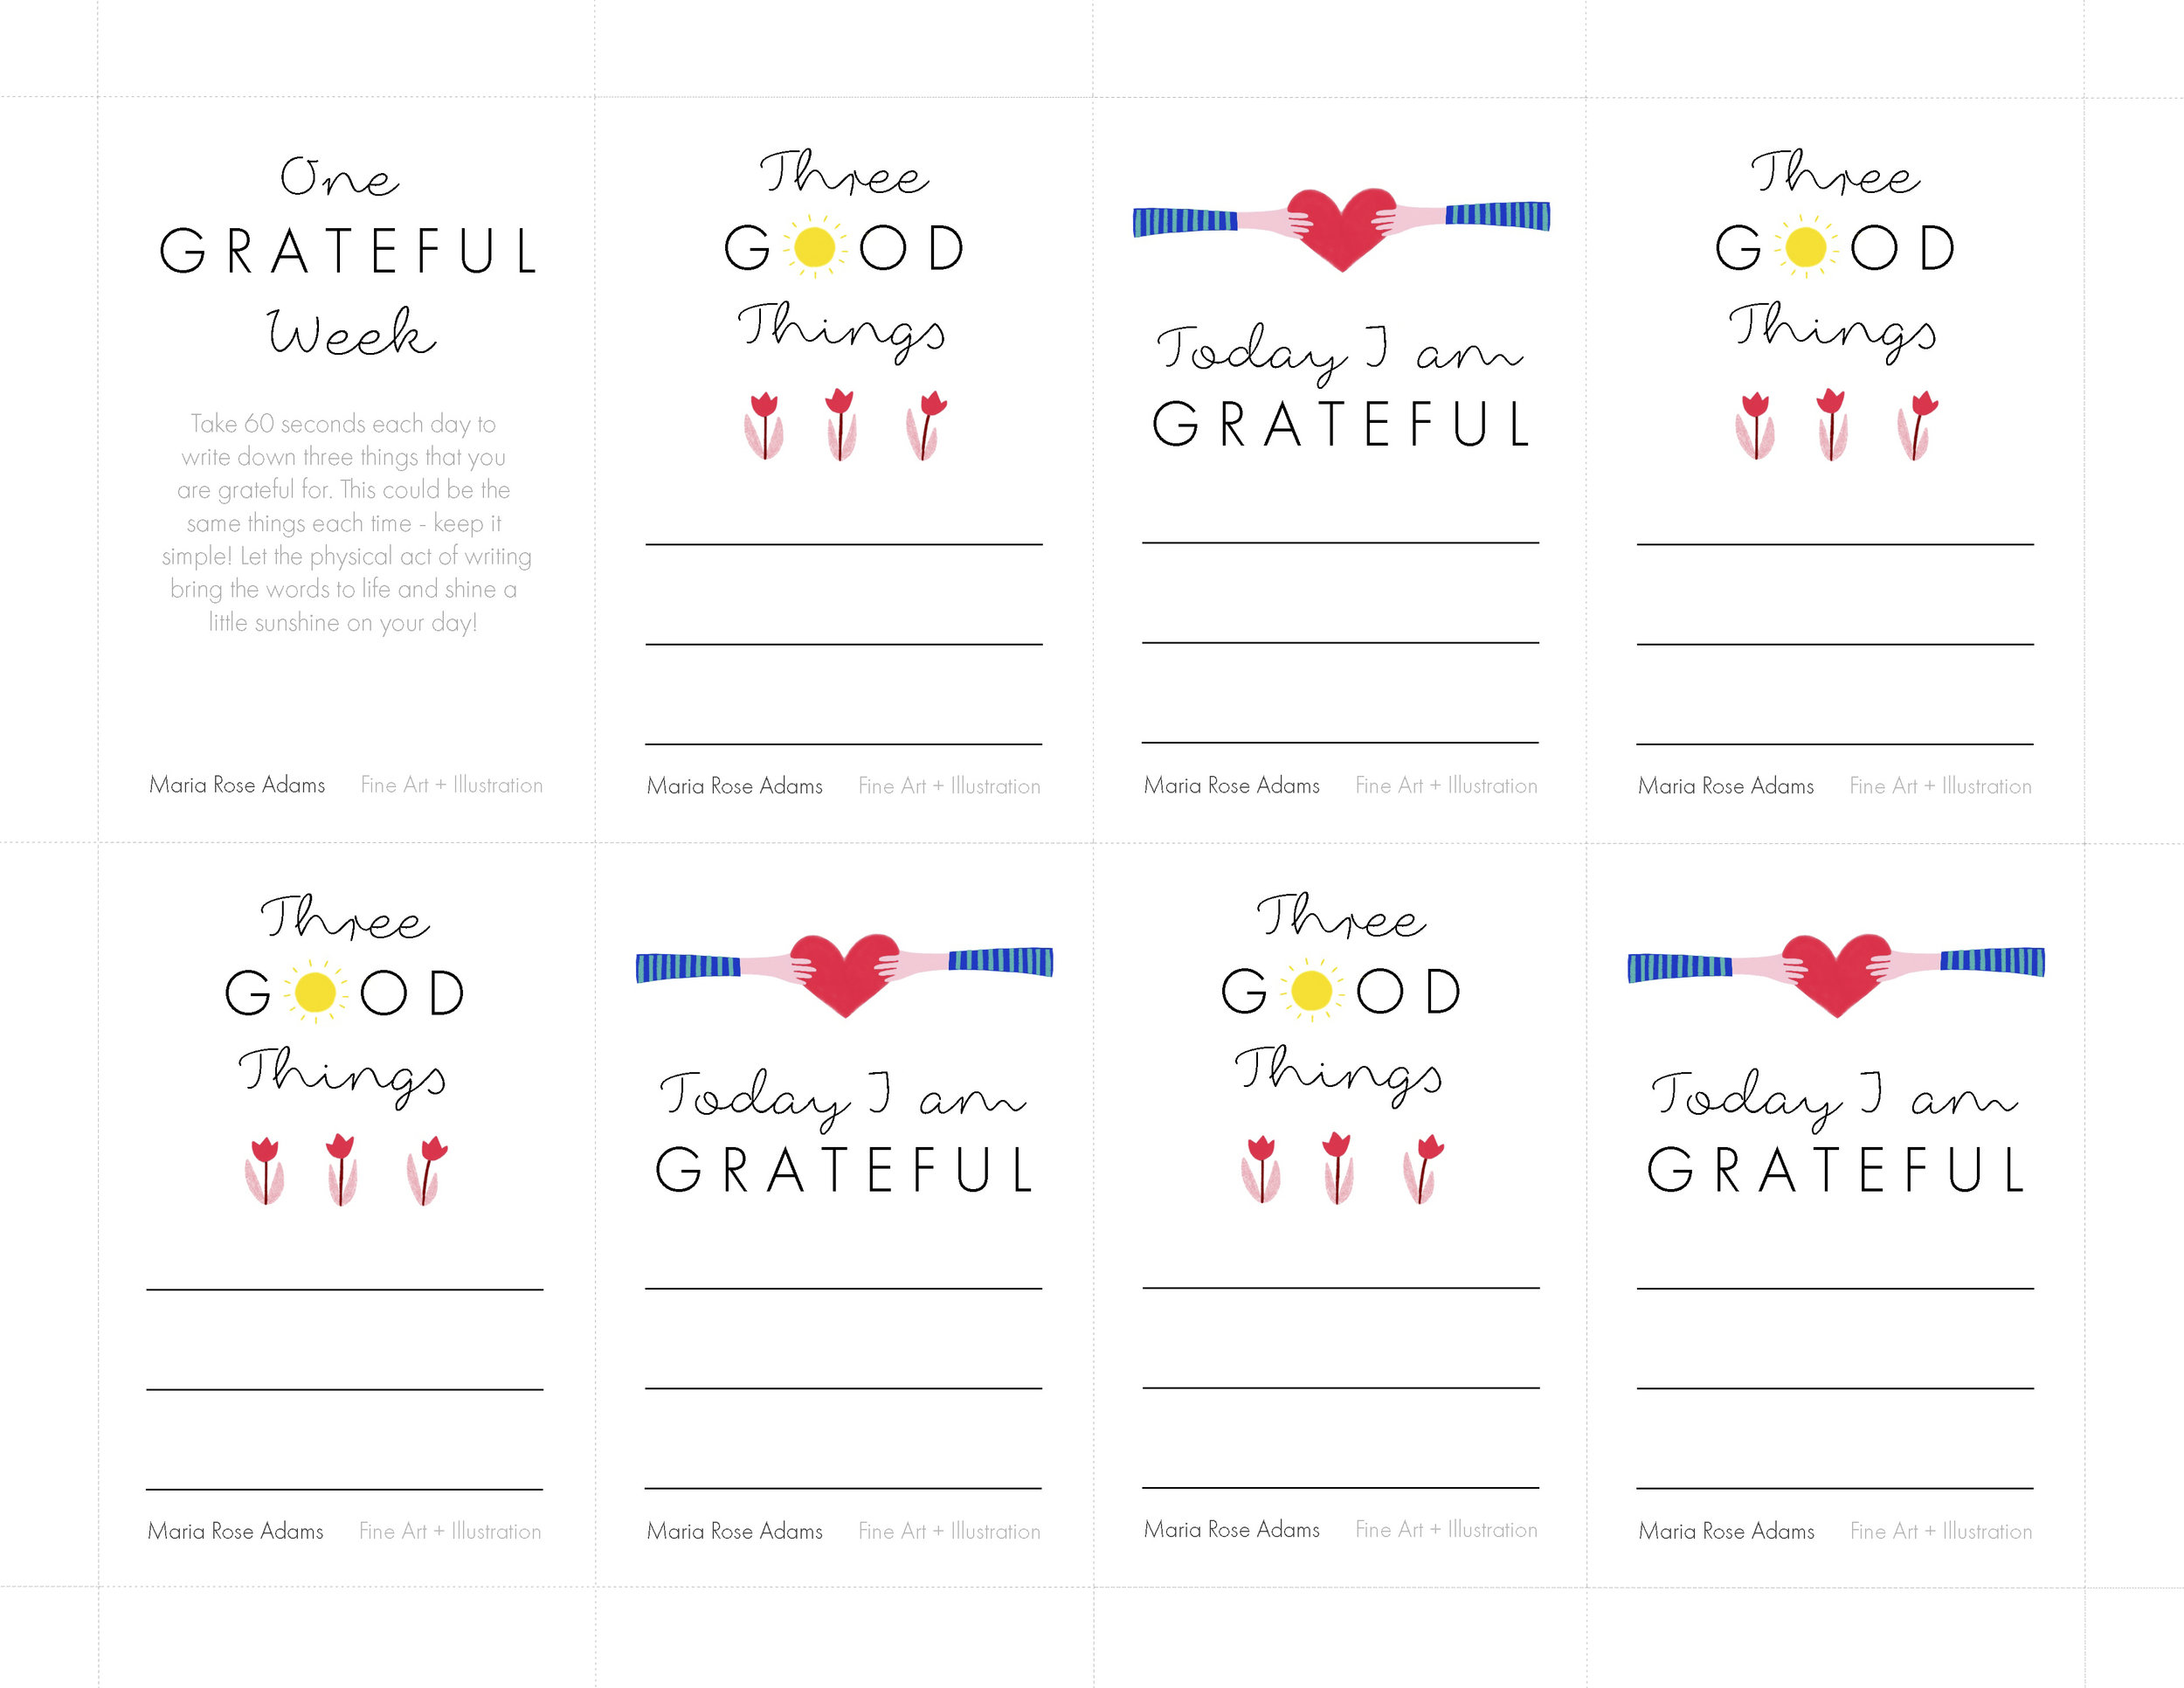 "Free downloadable gratitude notecards to guide you through ""One Grateful Week"". Made with love from me to you."